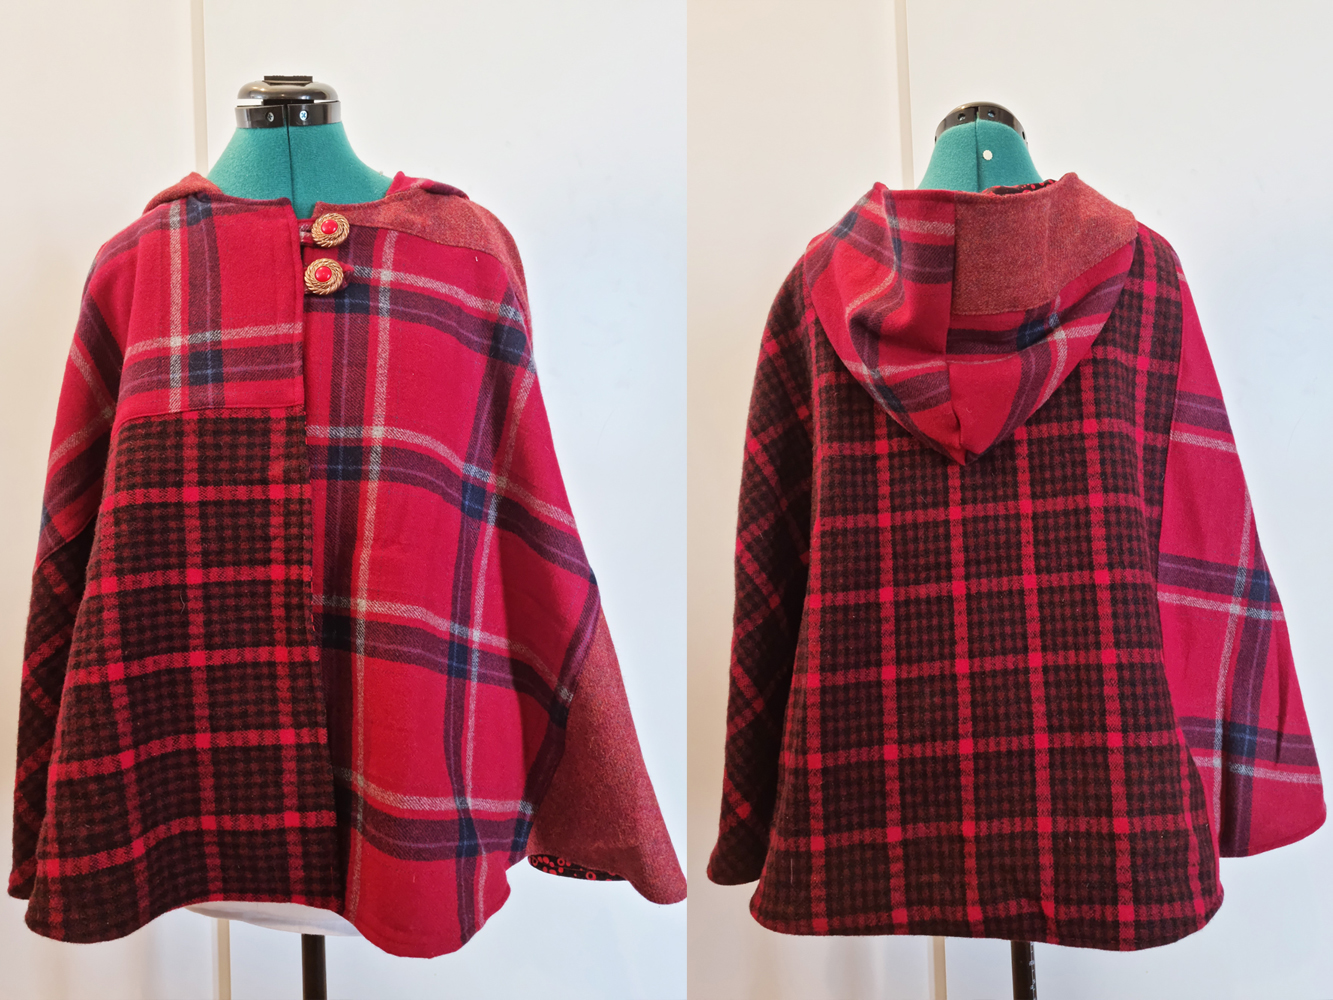 Up-cycled Woolen Cloaks